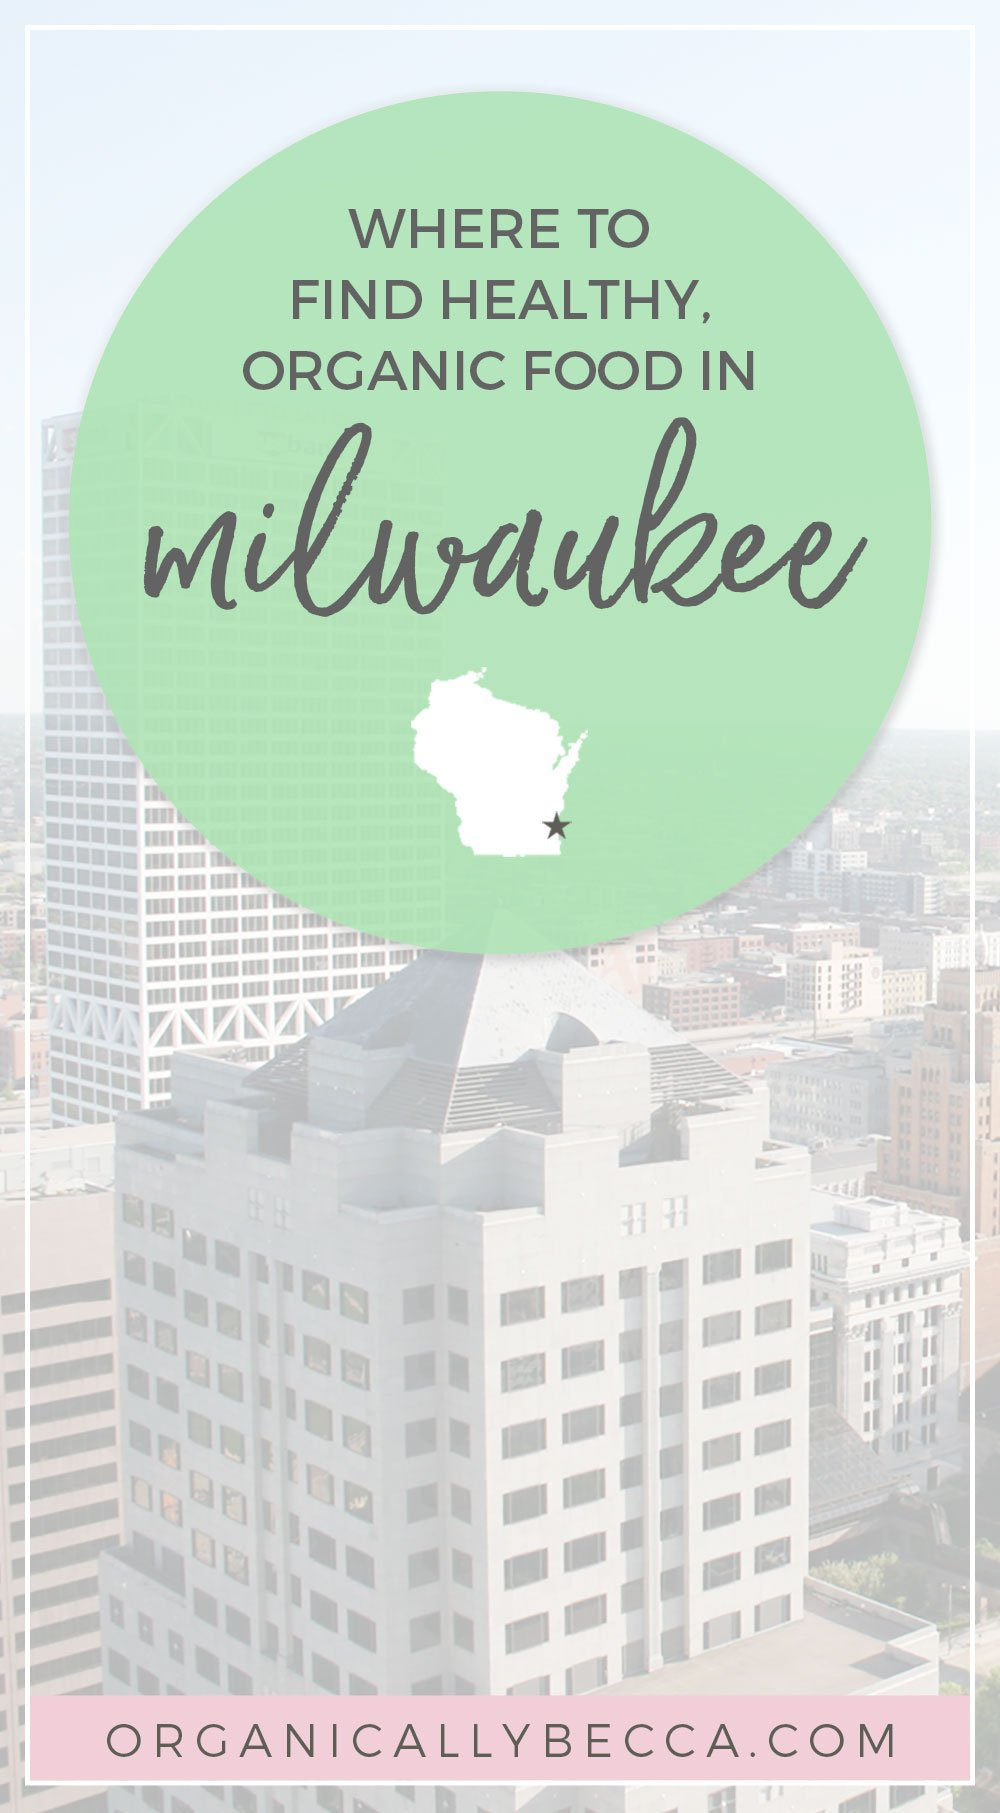 Organically Becca's Milwaukee City Guide